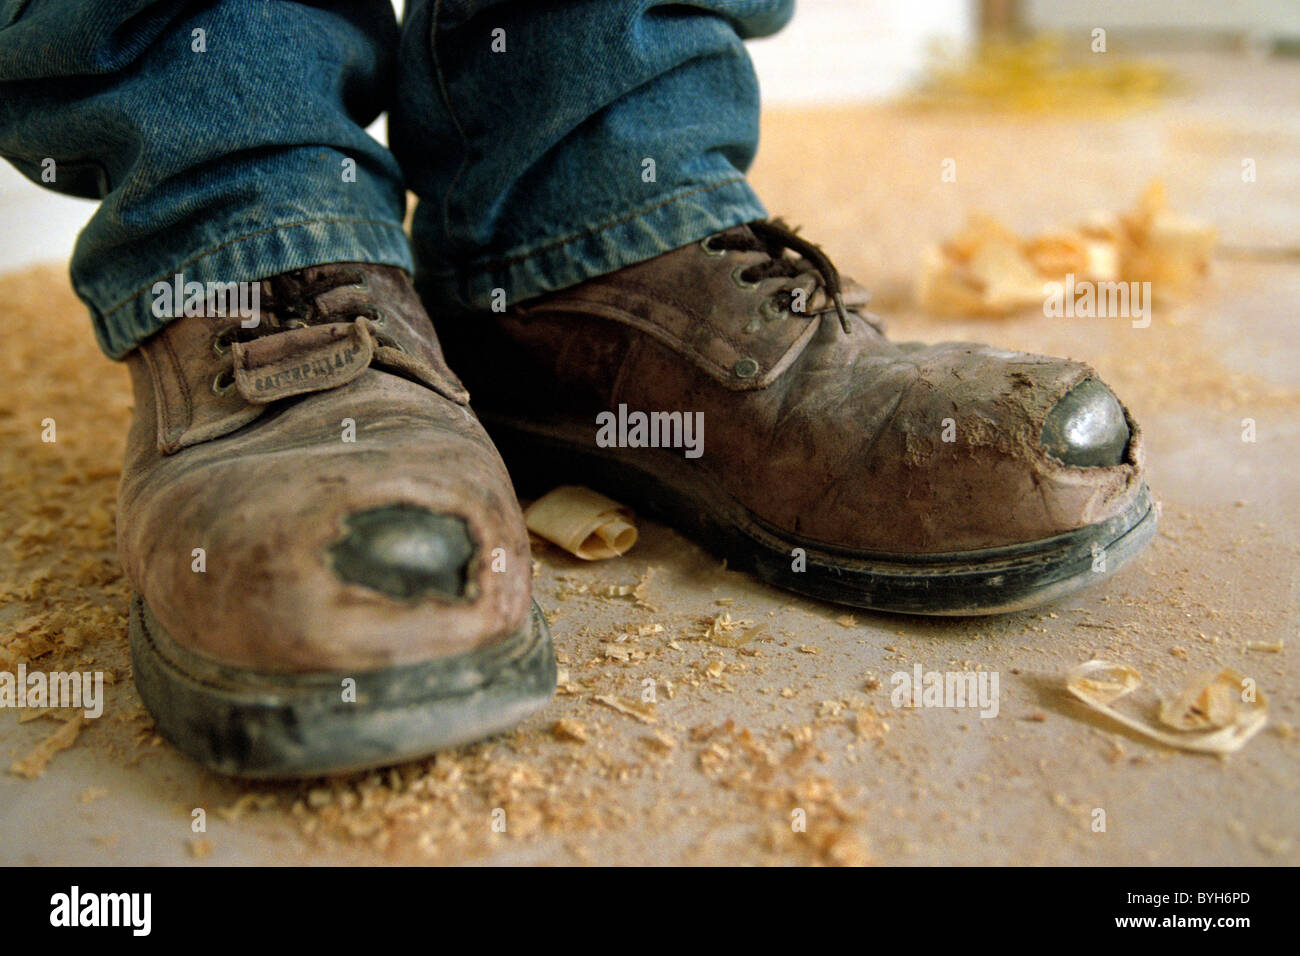 Detail Of Worn Out Safety Shoes Stock Photo Royalty Free